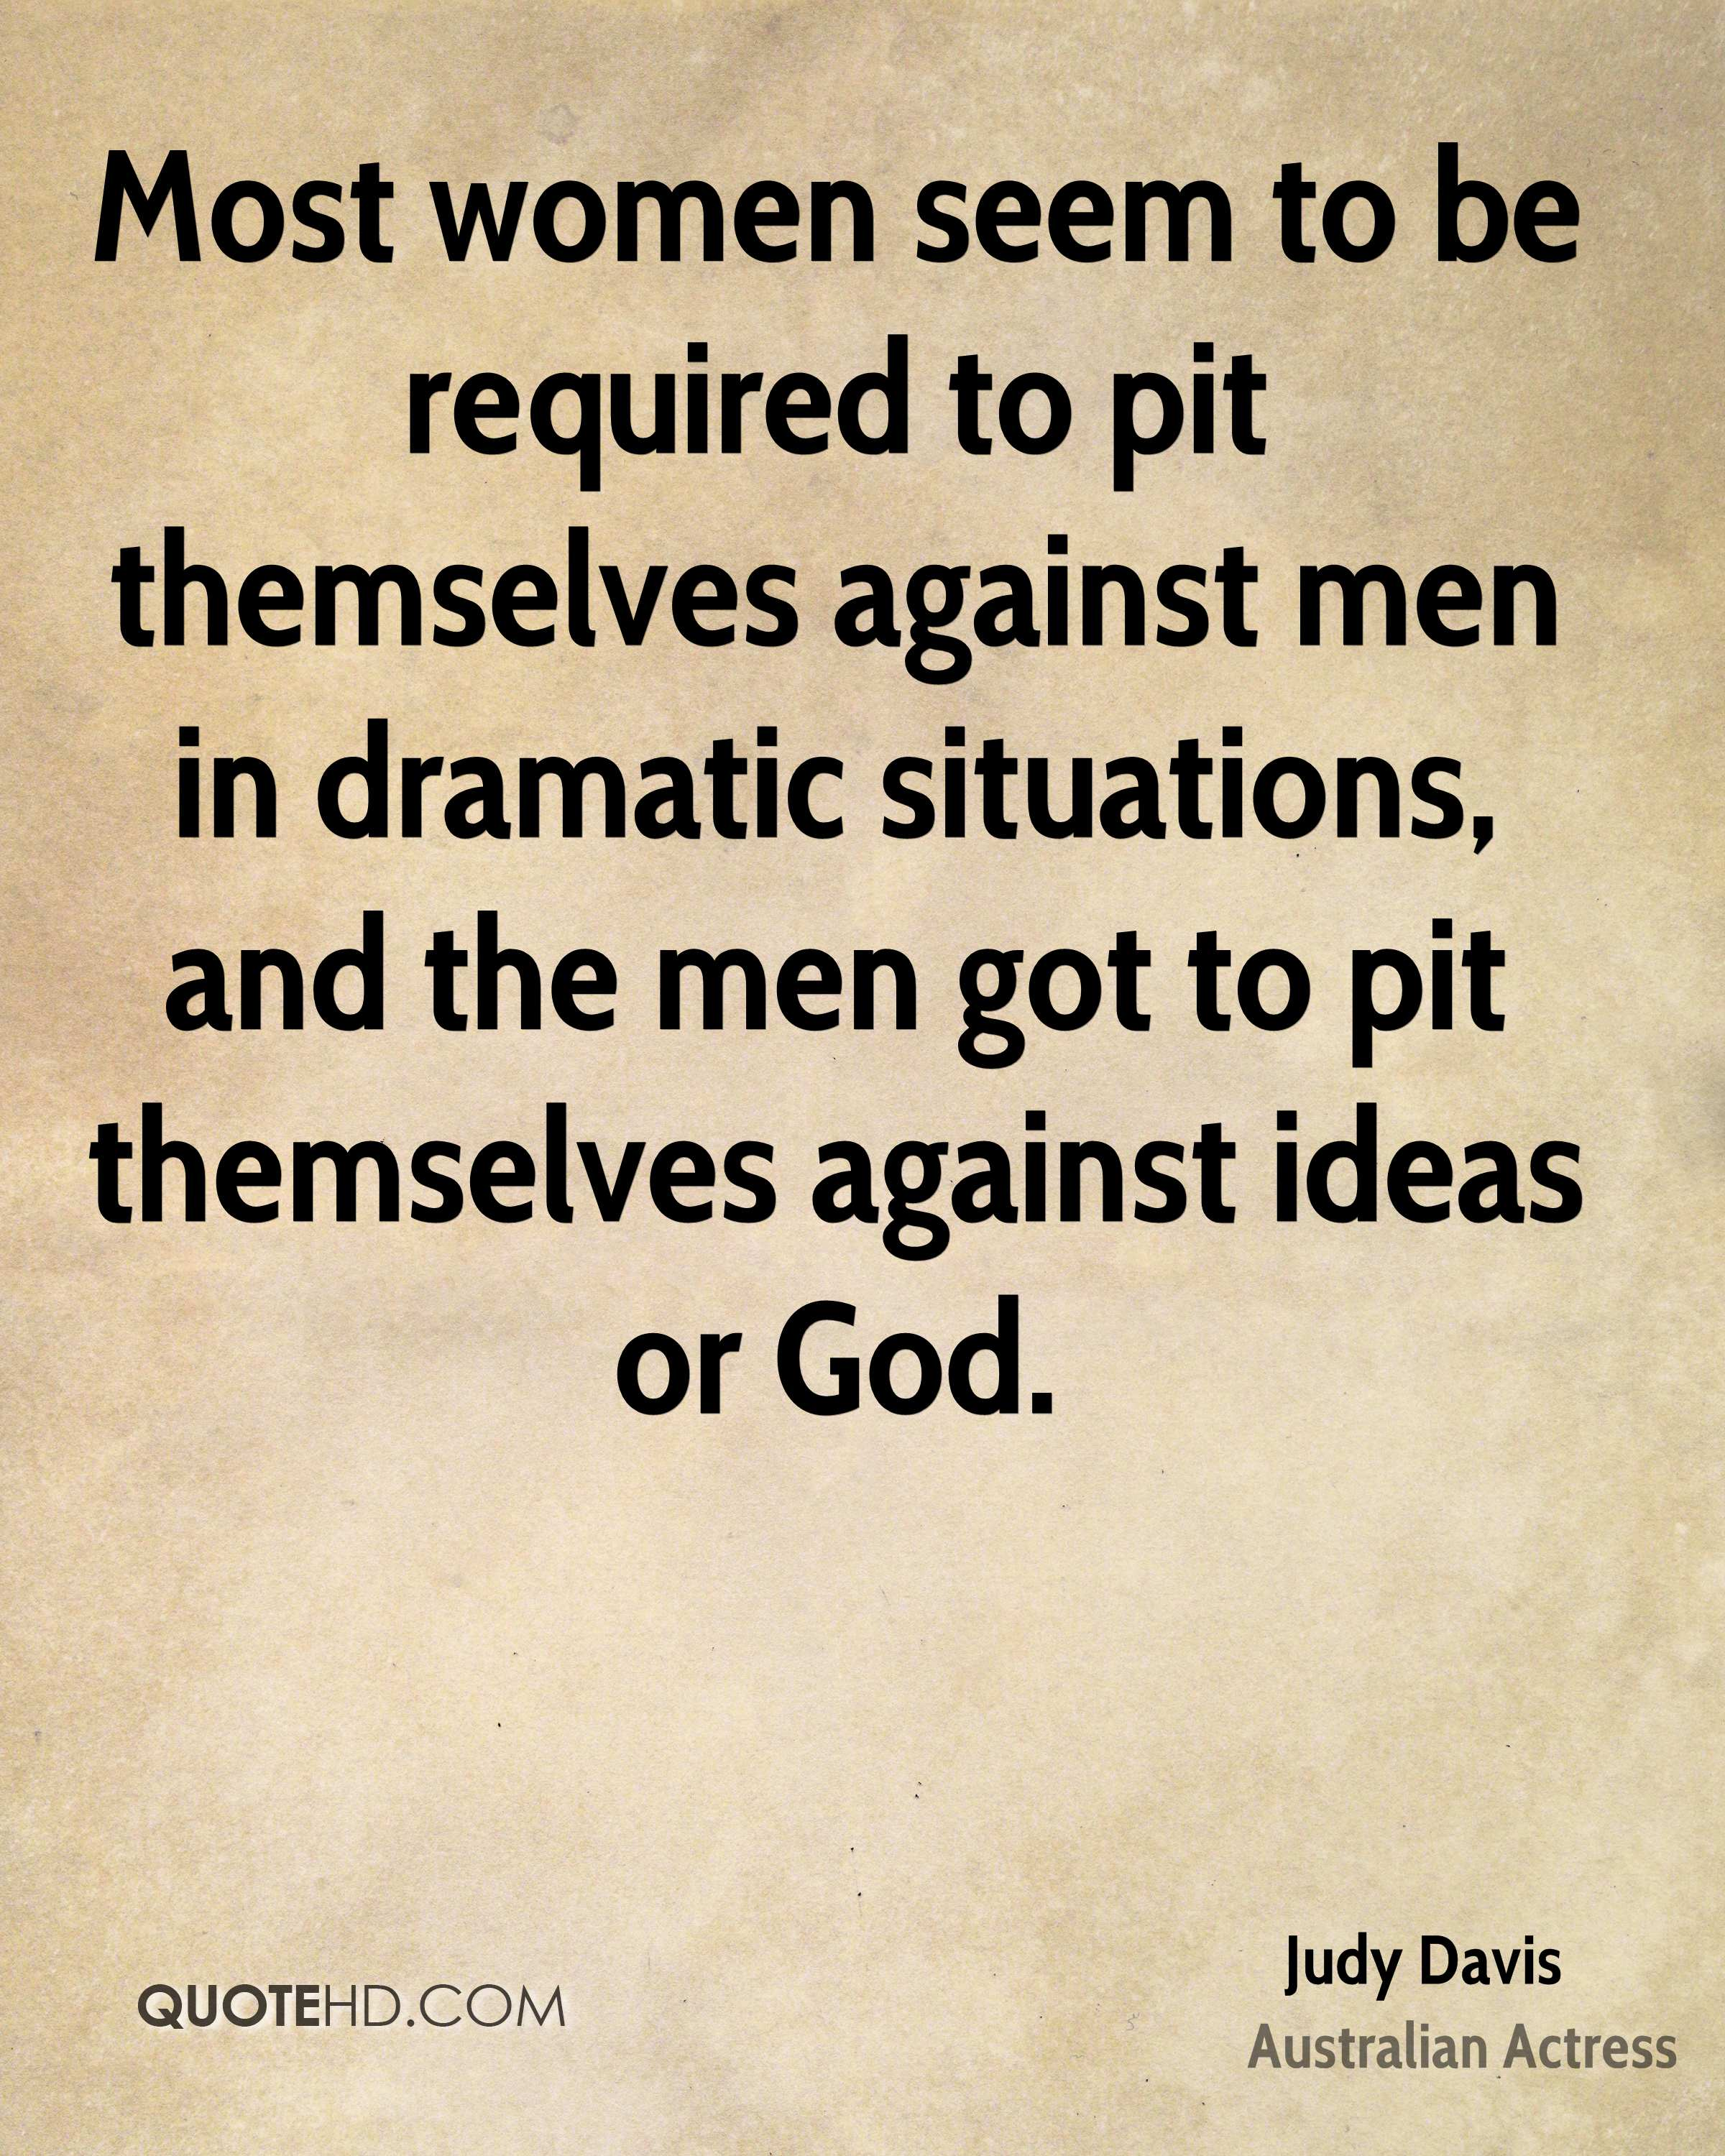 Most women seem to be required to pit themselves against men in dramatic situations, and the men got to pit themselves against ideas or God.